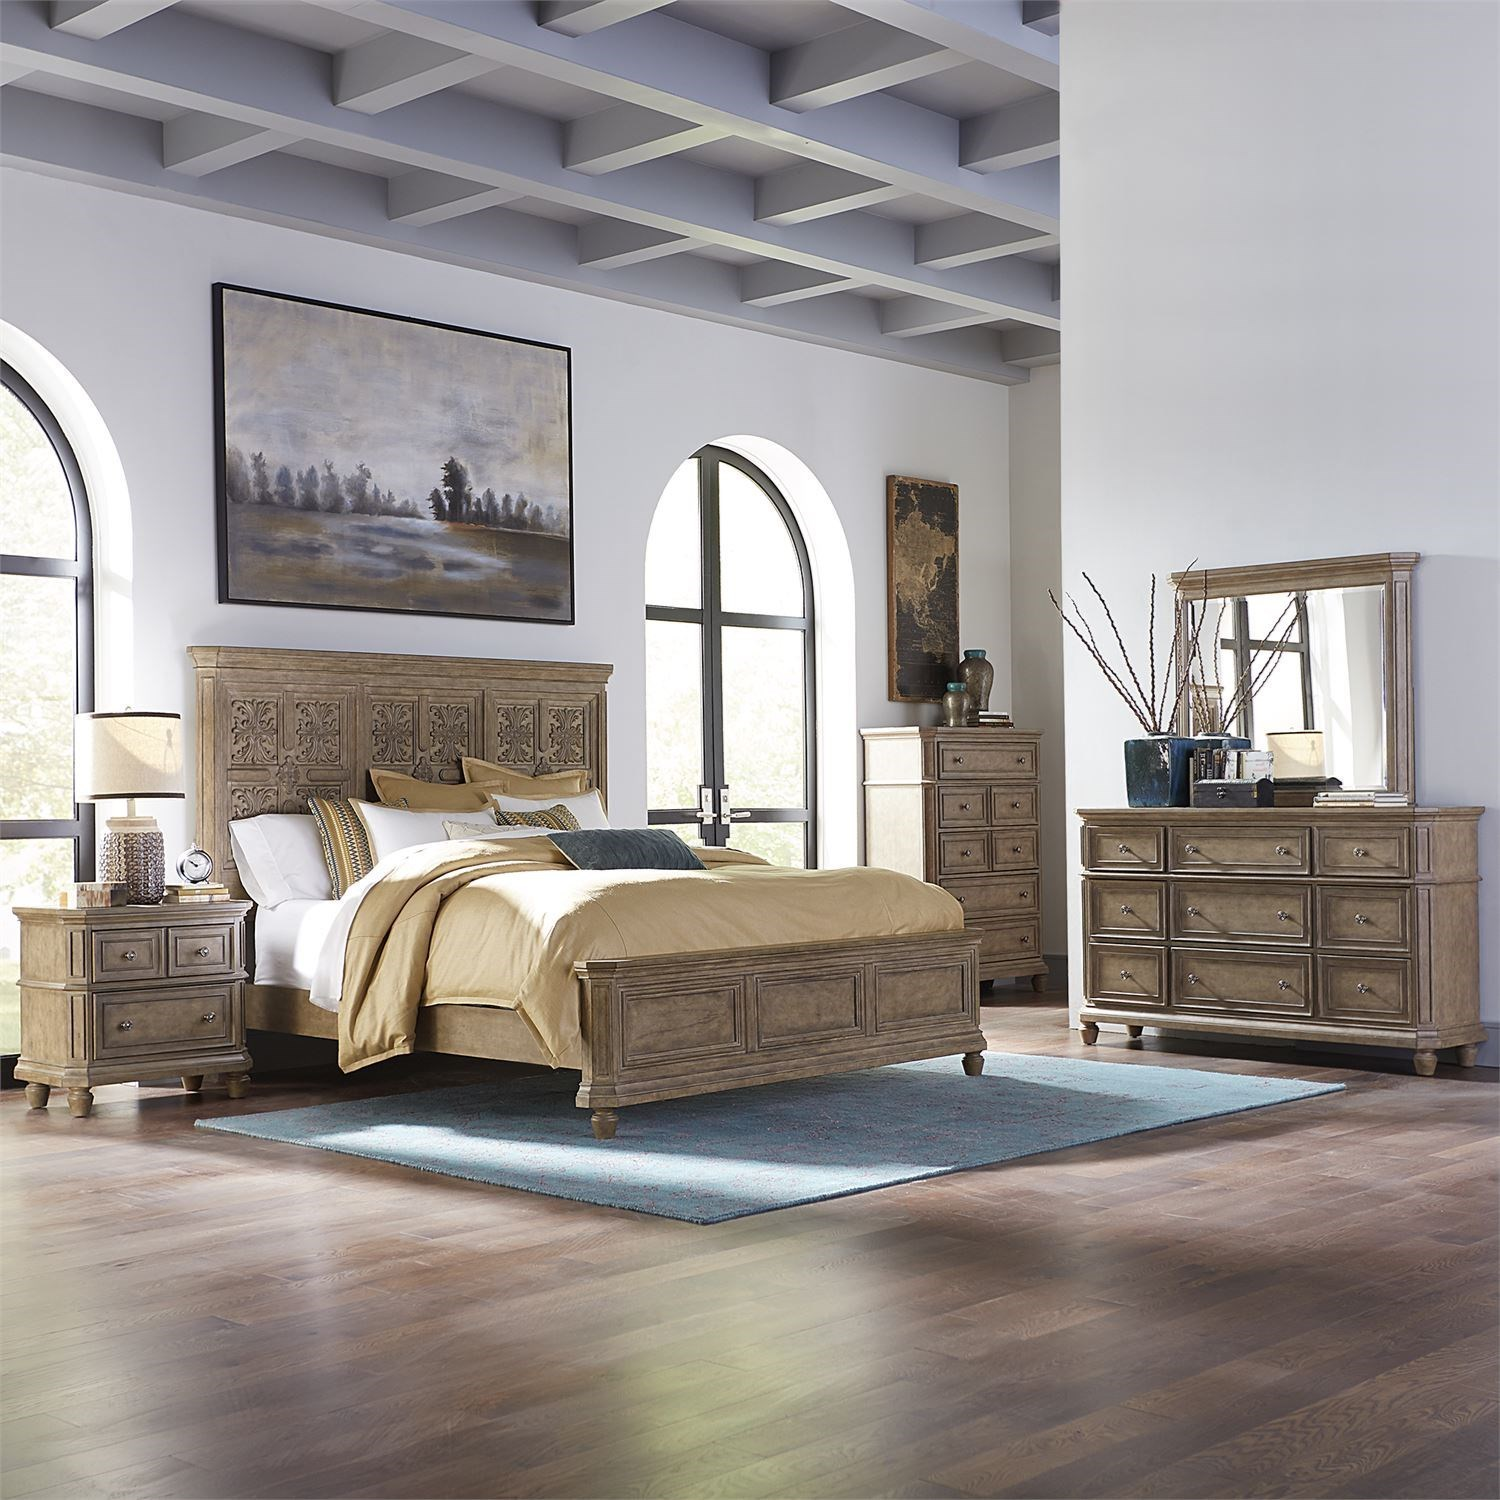 The Laurels Queen Bedroom Group by Libby at Walker's Furniture